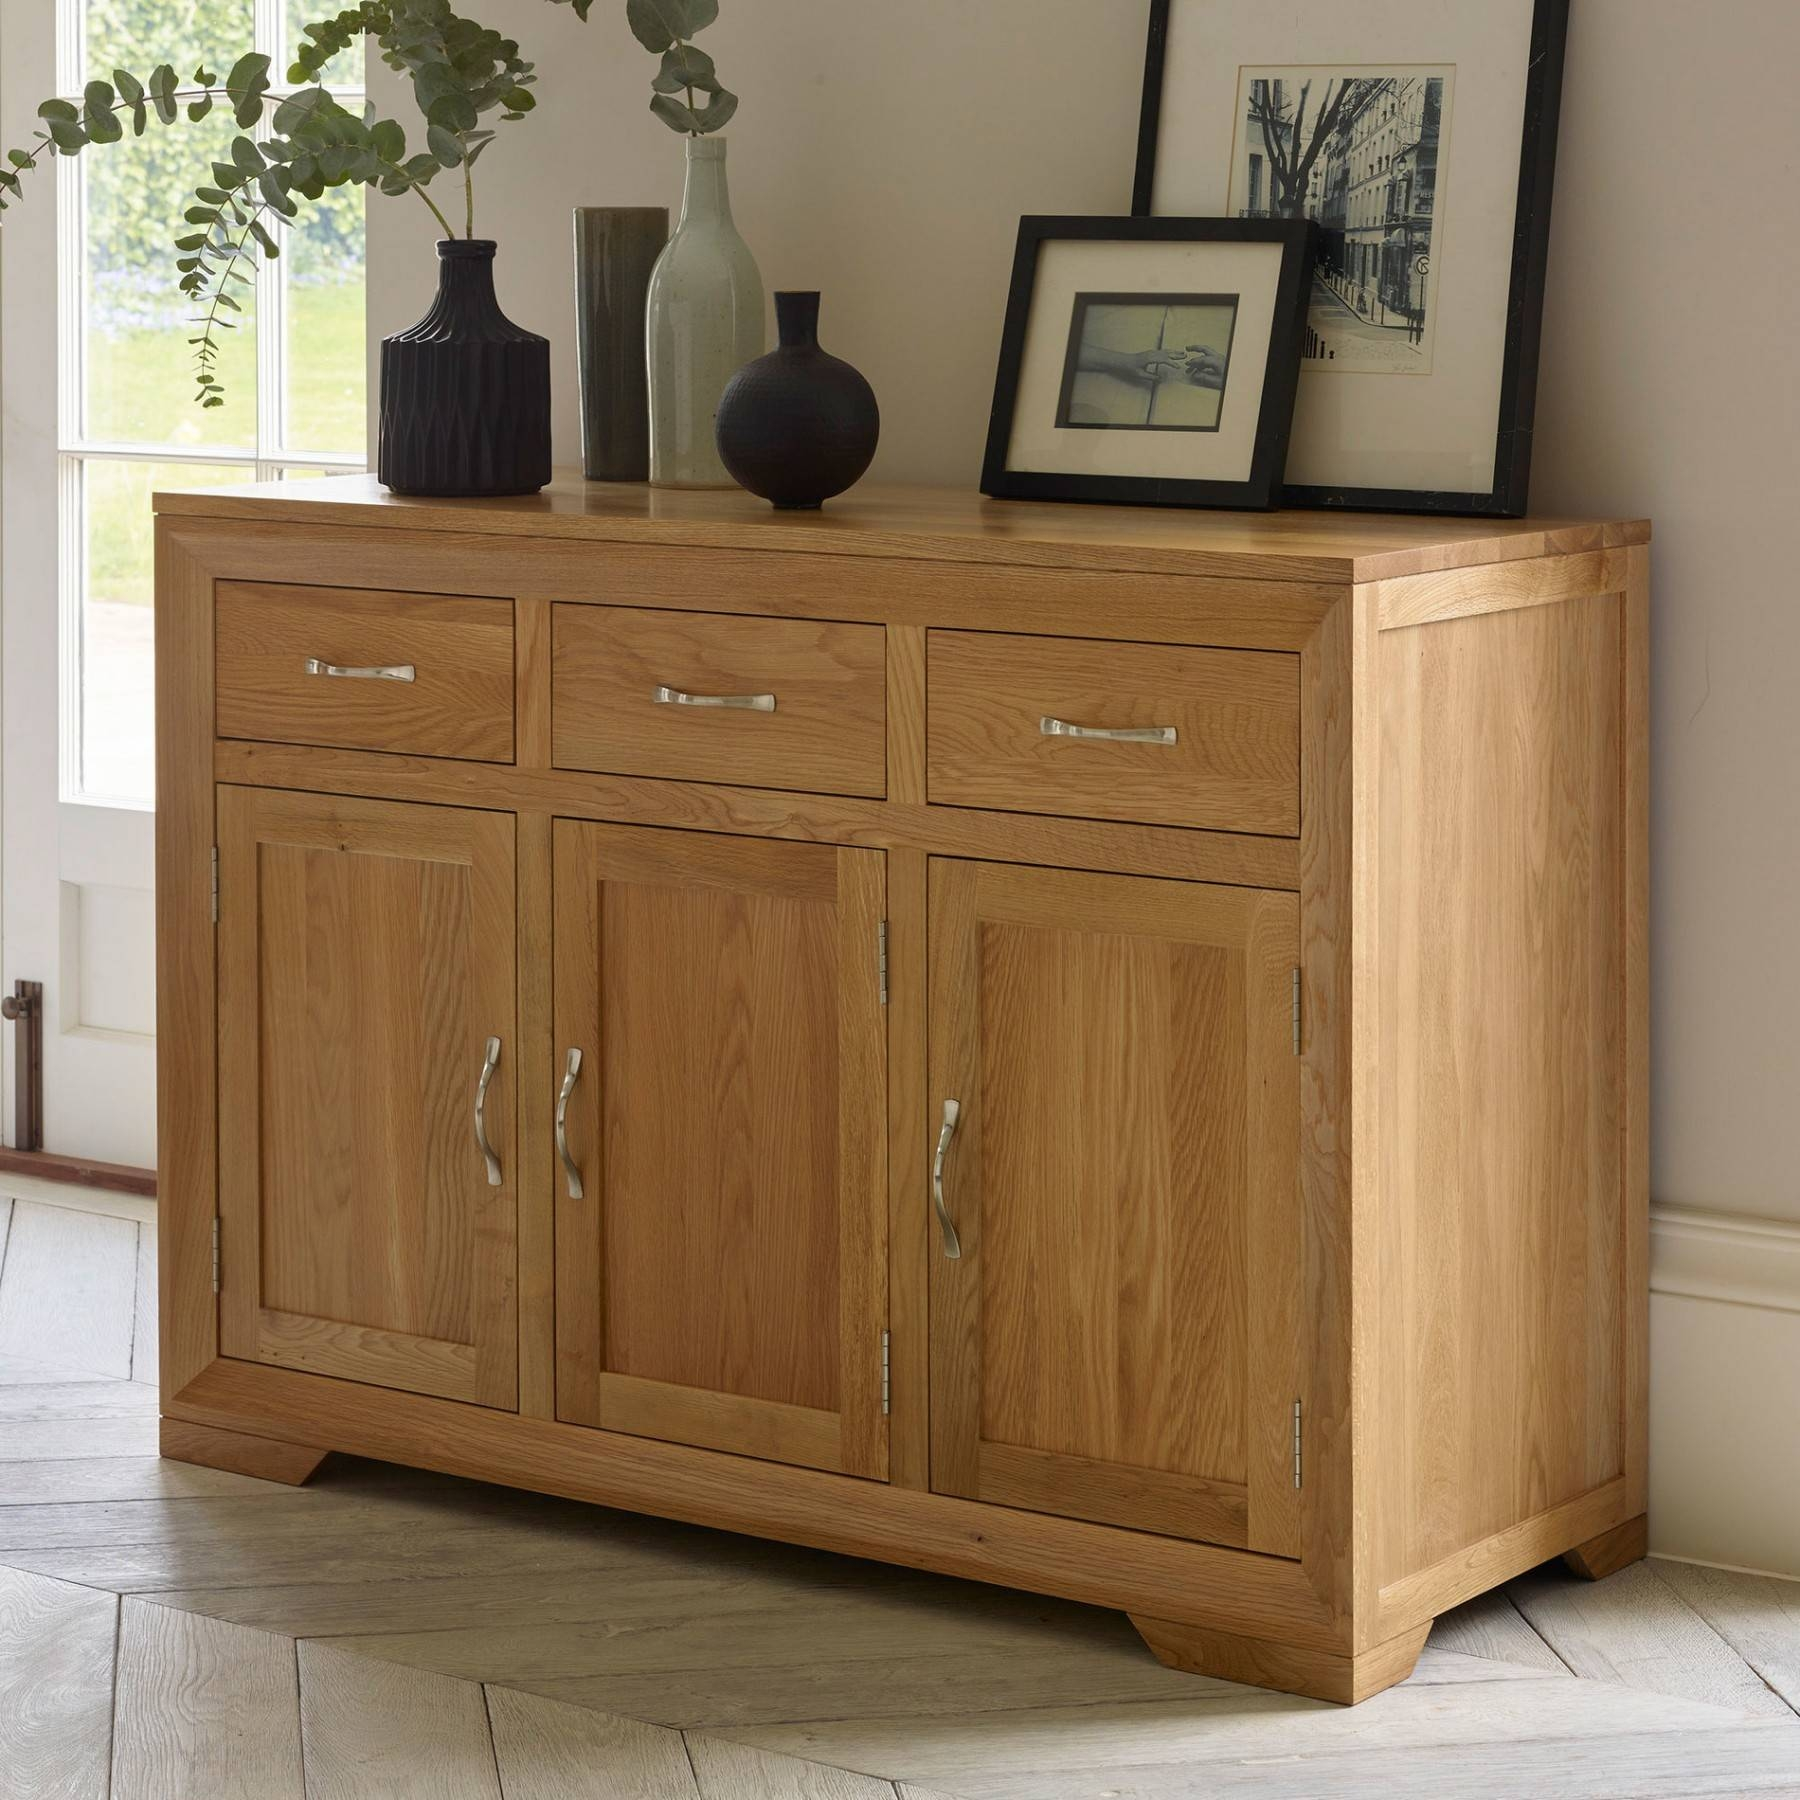 Bevel Natural Solid Oak Large Sideboard | Sideboards | Dining Room Pertaining To Current Natural Oak Sideboards (#2 of 15)